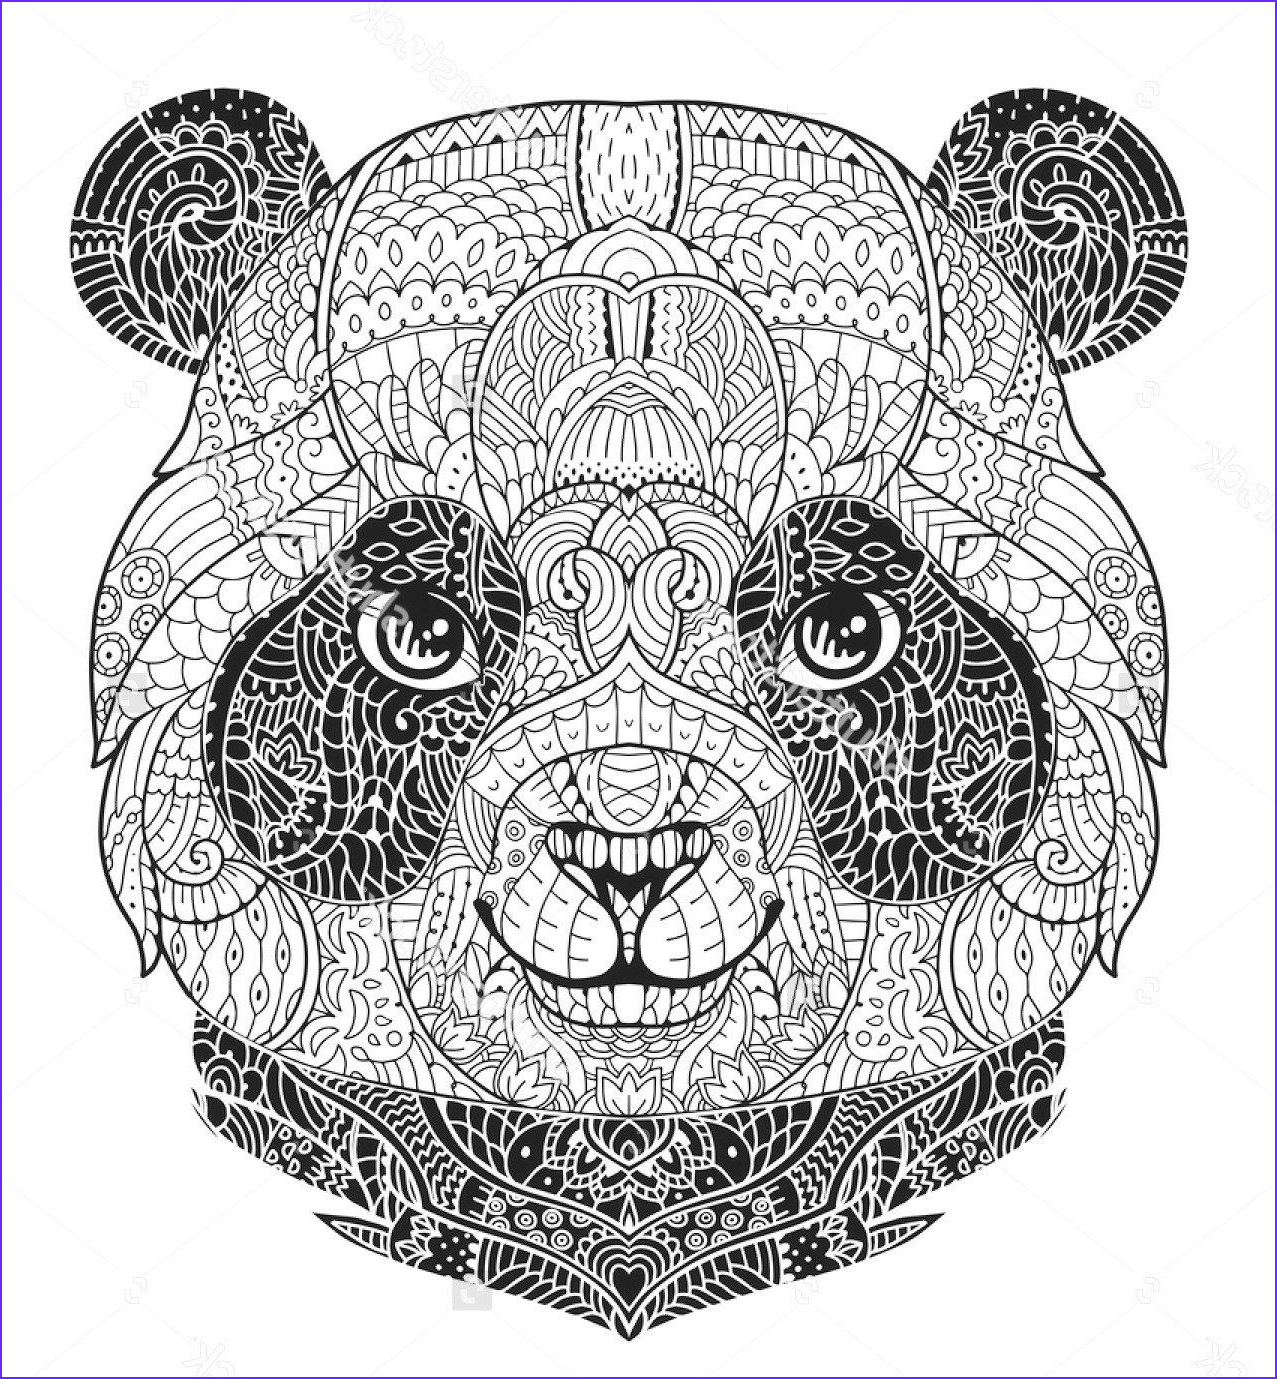 Coloring Pictures for Adults Awesome Photos Panda Coloring Pages Best Coloring Pages for Kids